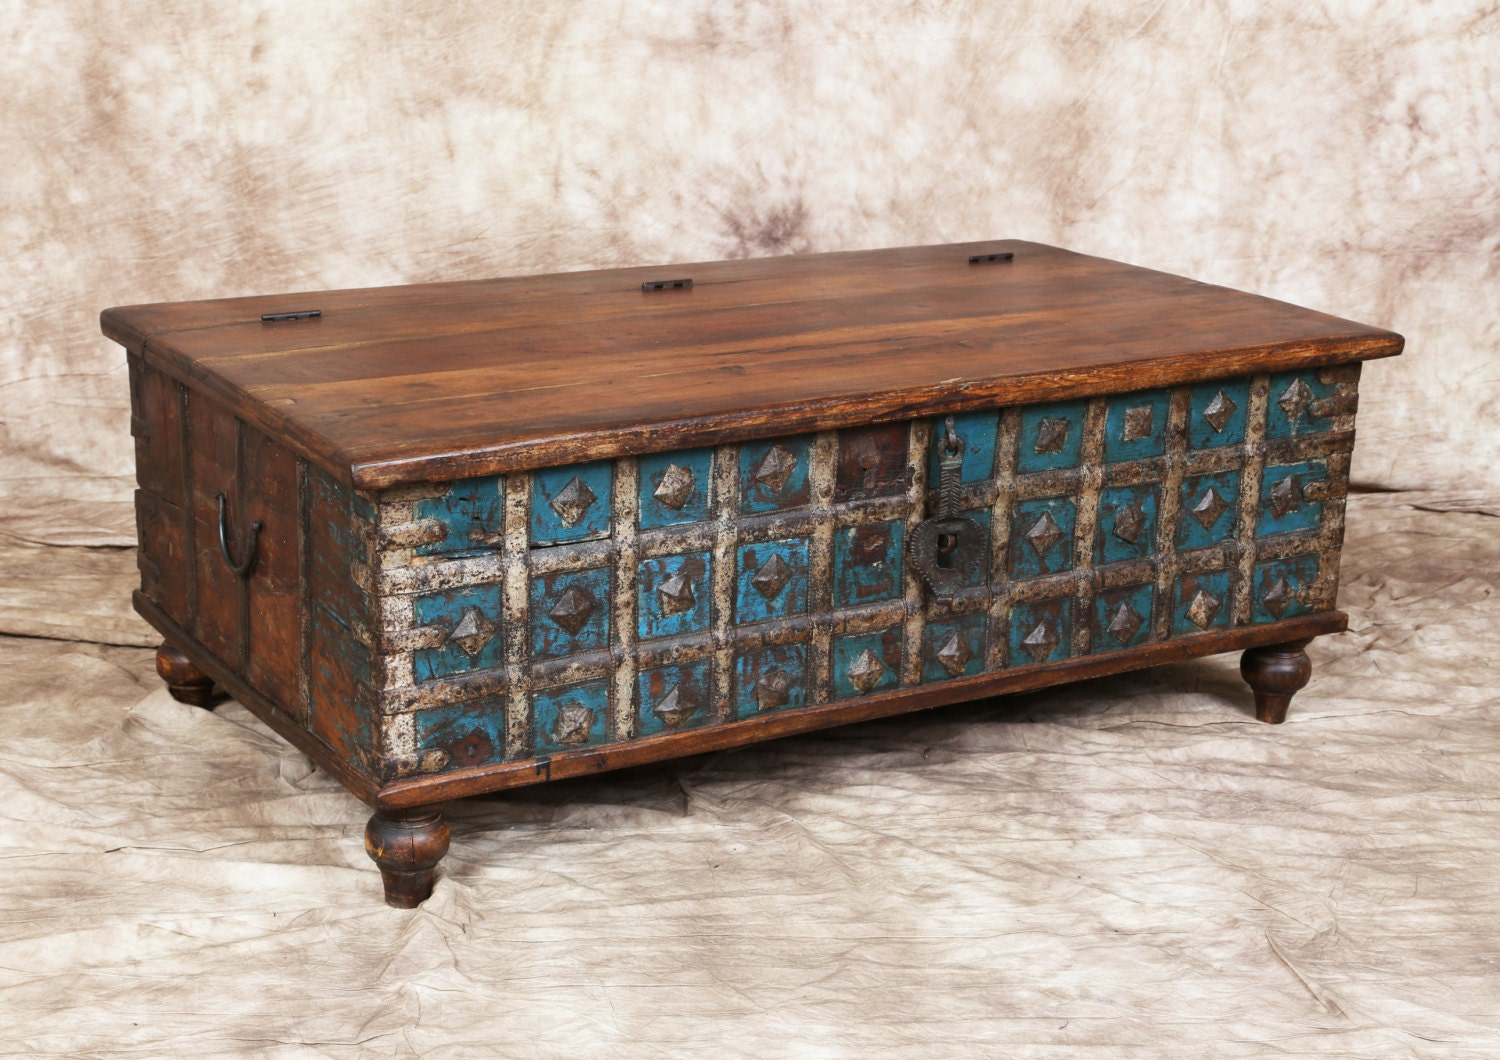 Antique Blue Cream Indian Trunk Coffee Table Metal By Wanderloot: indian trunk coffee table